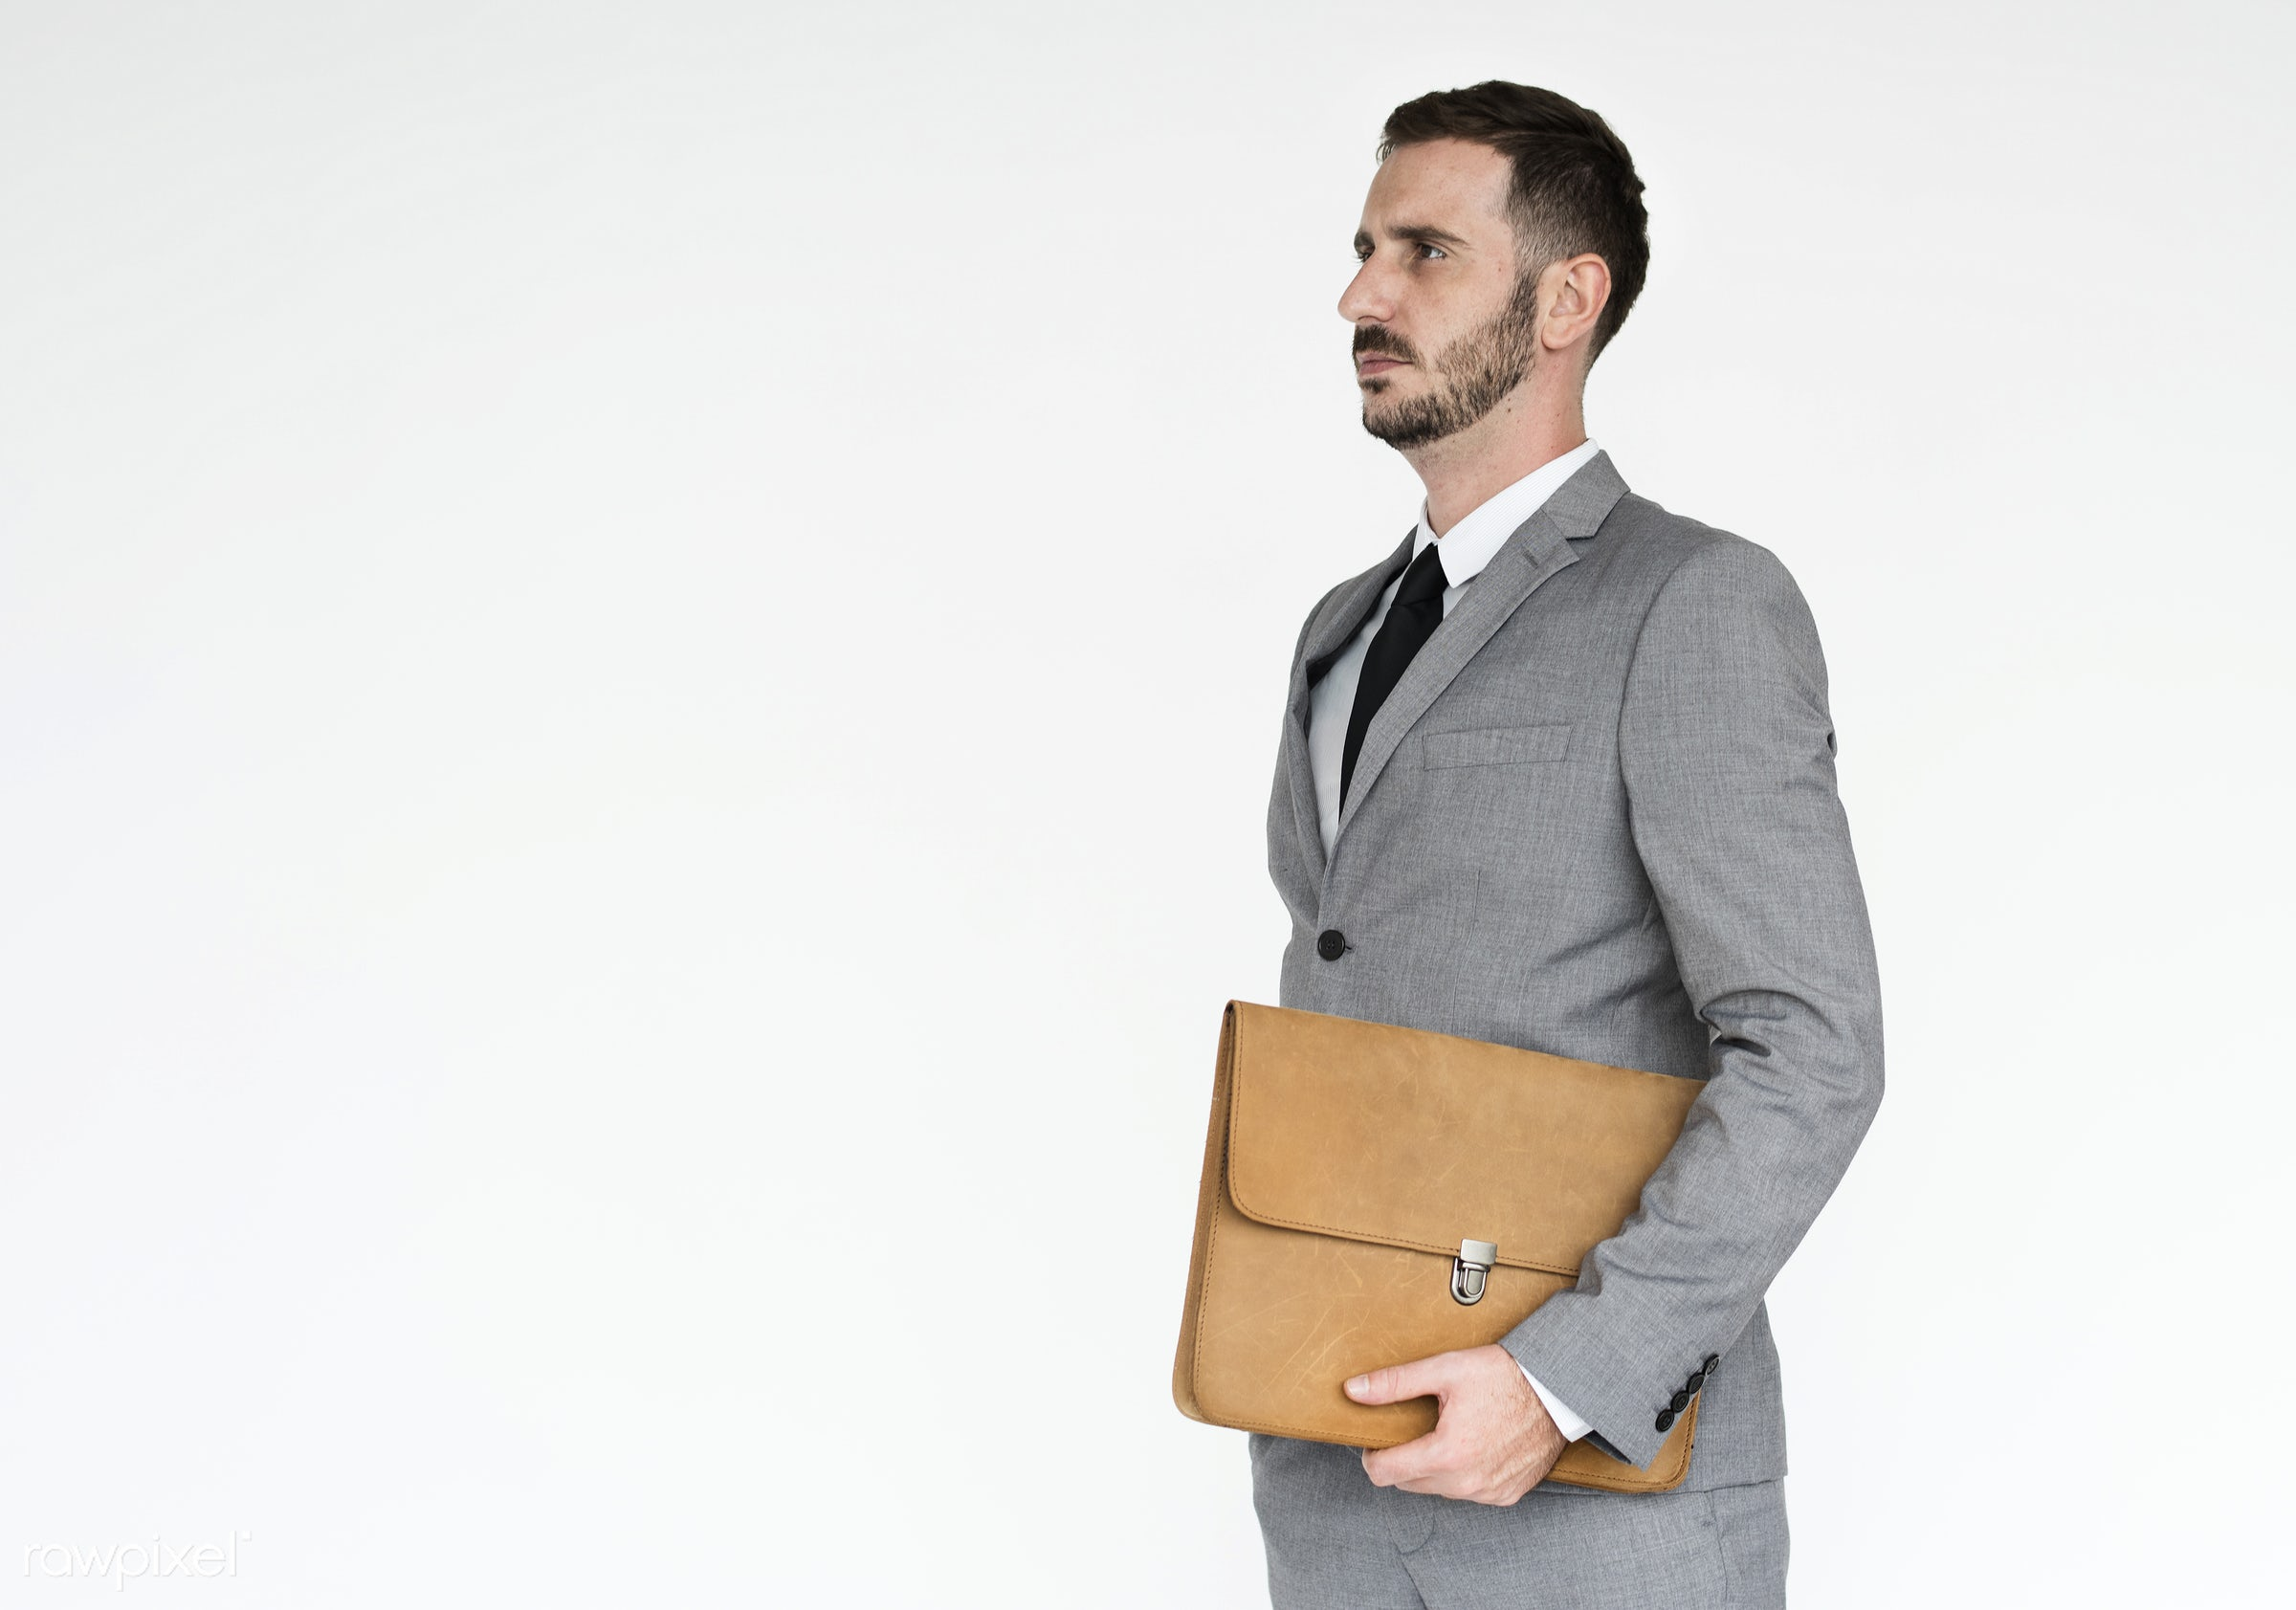 studio, expression, person, model, white collar worker, holding, isolated on white, luggage, people, business, businessman,...